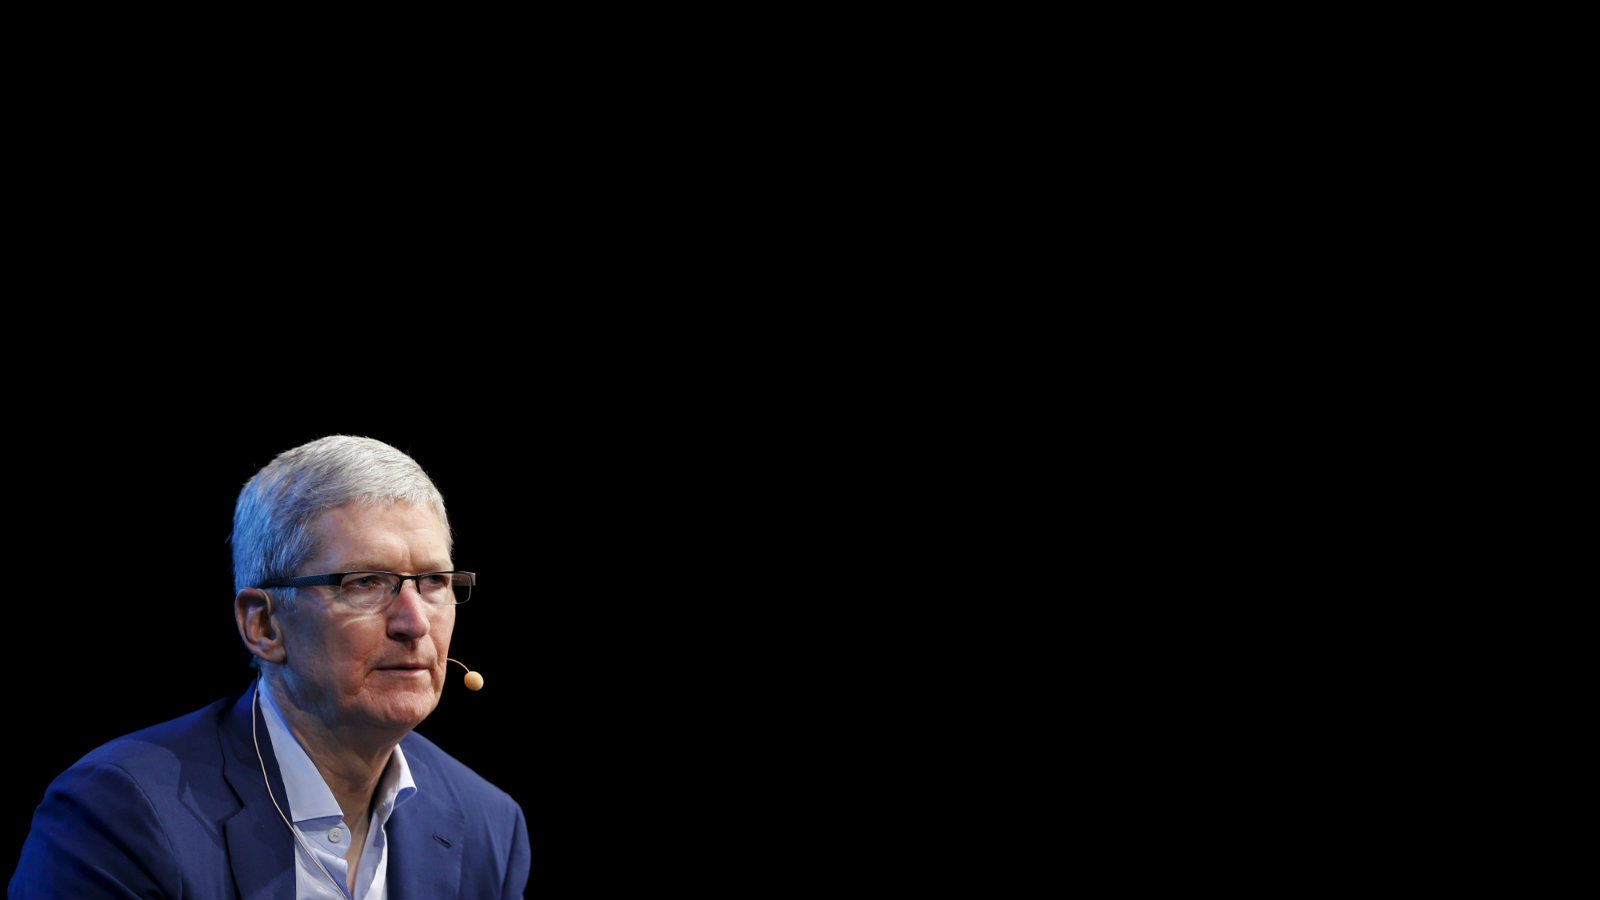 Apple CEO Tim Cook speaks during the Wall Street Journal Digital Live ( WSJDLive ) conference at the Montage hotline Laguna Beach, California October 19, 2015.